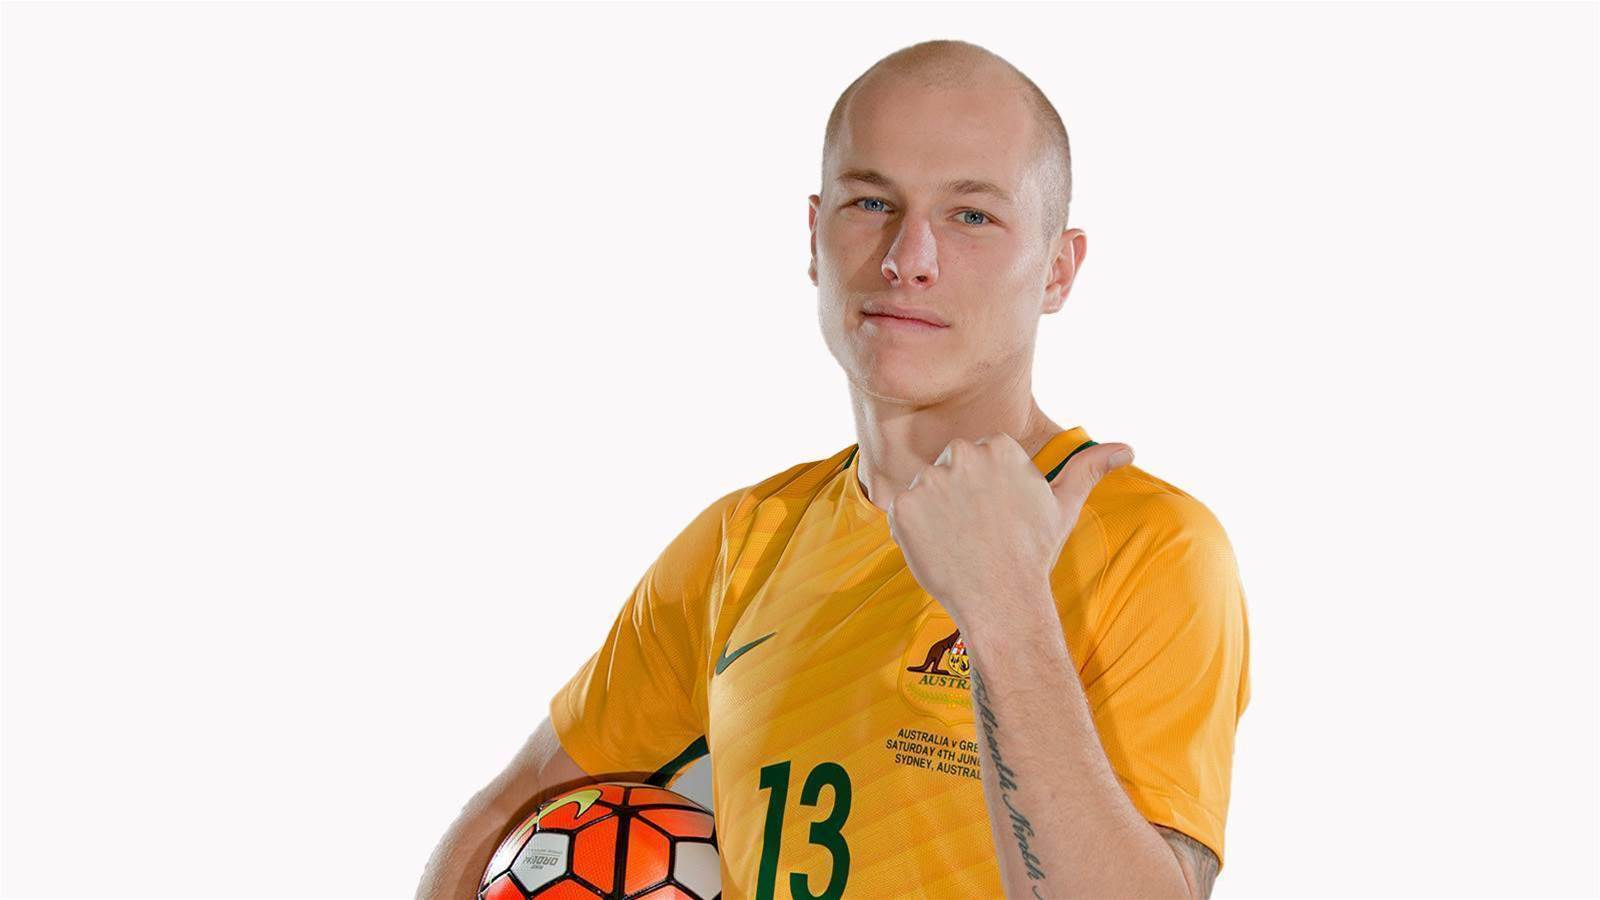 Is it time for Aaron Mooy to move on?